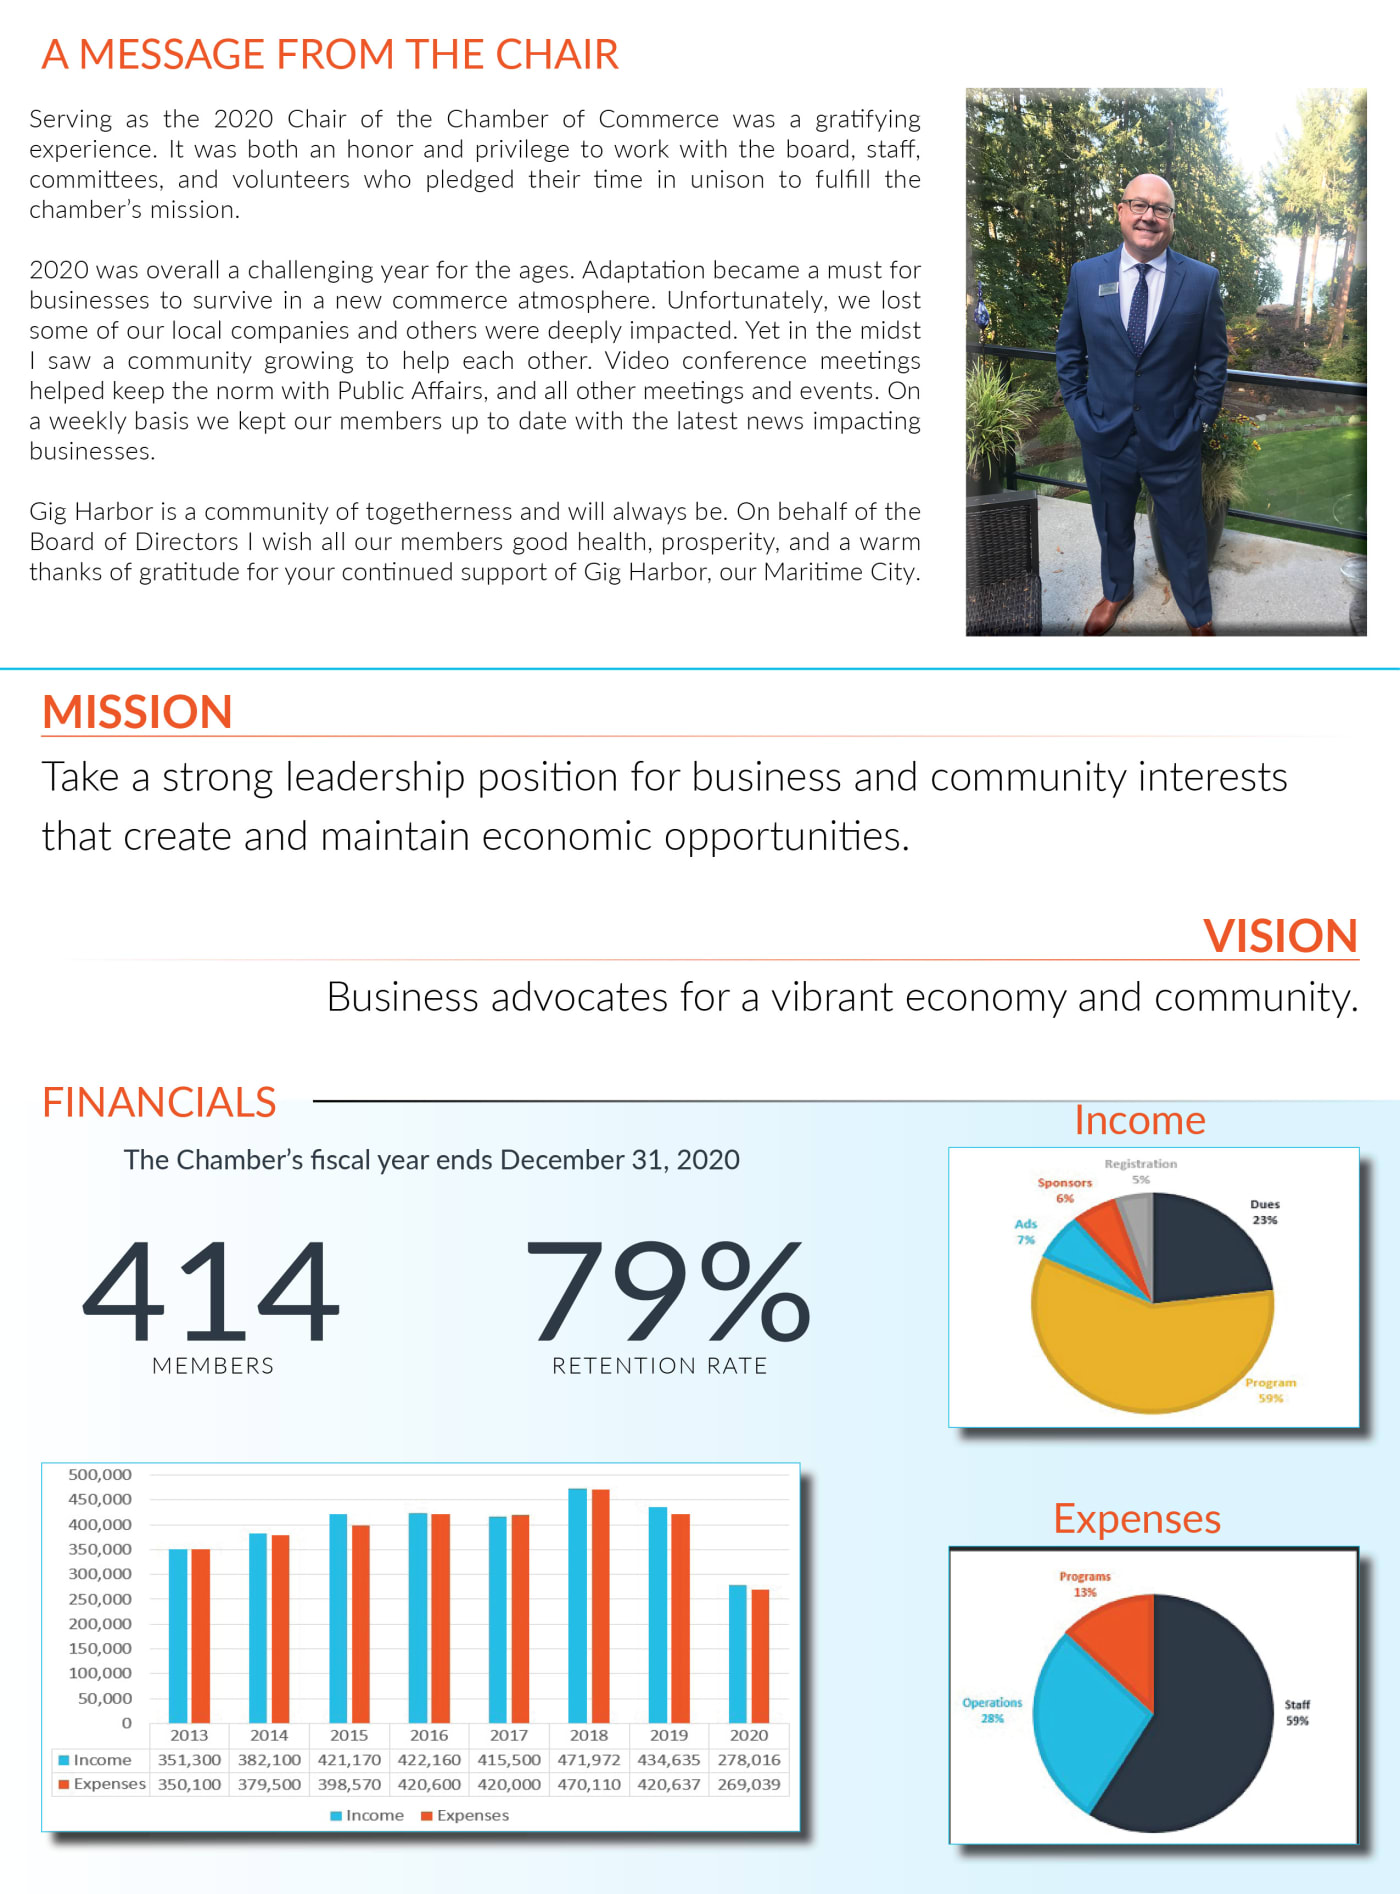 2020 Annual Report Stats